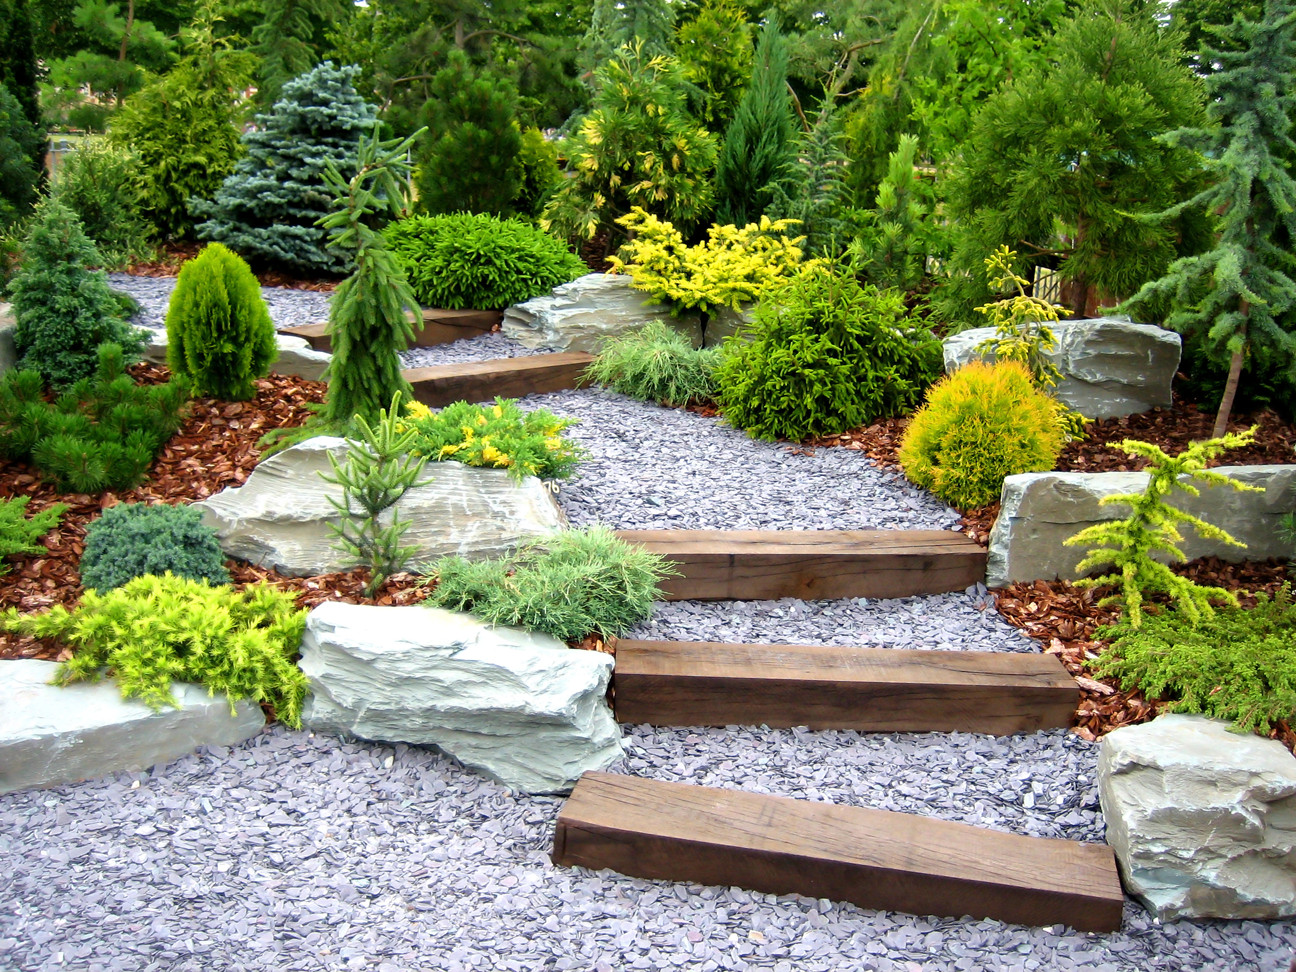 landscape design images ideas ZBVQZAW